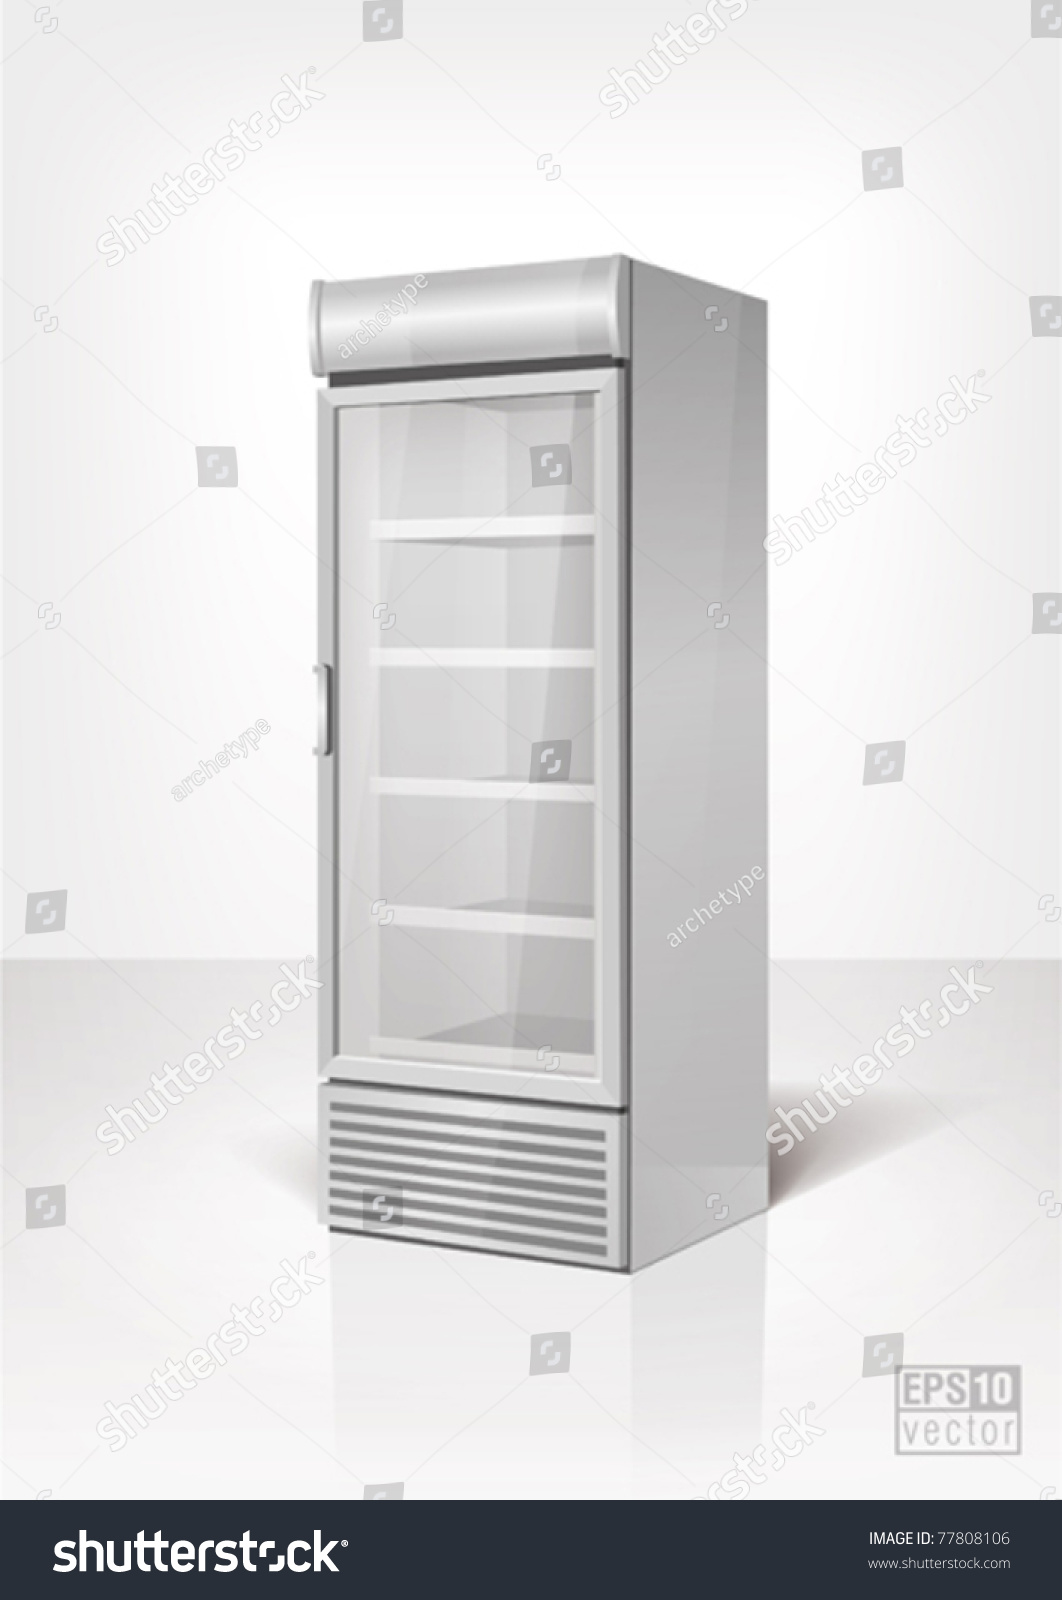 Drink Display Fridge With Glass Door Eps10 Vector